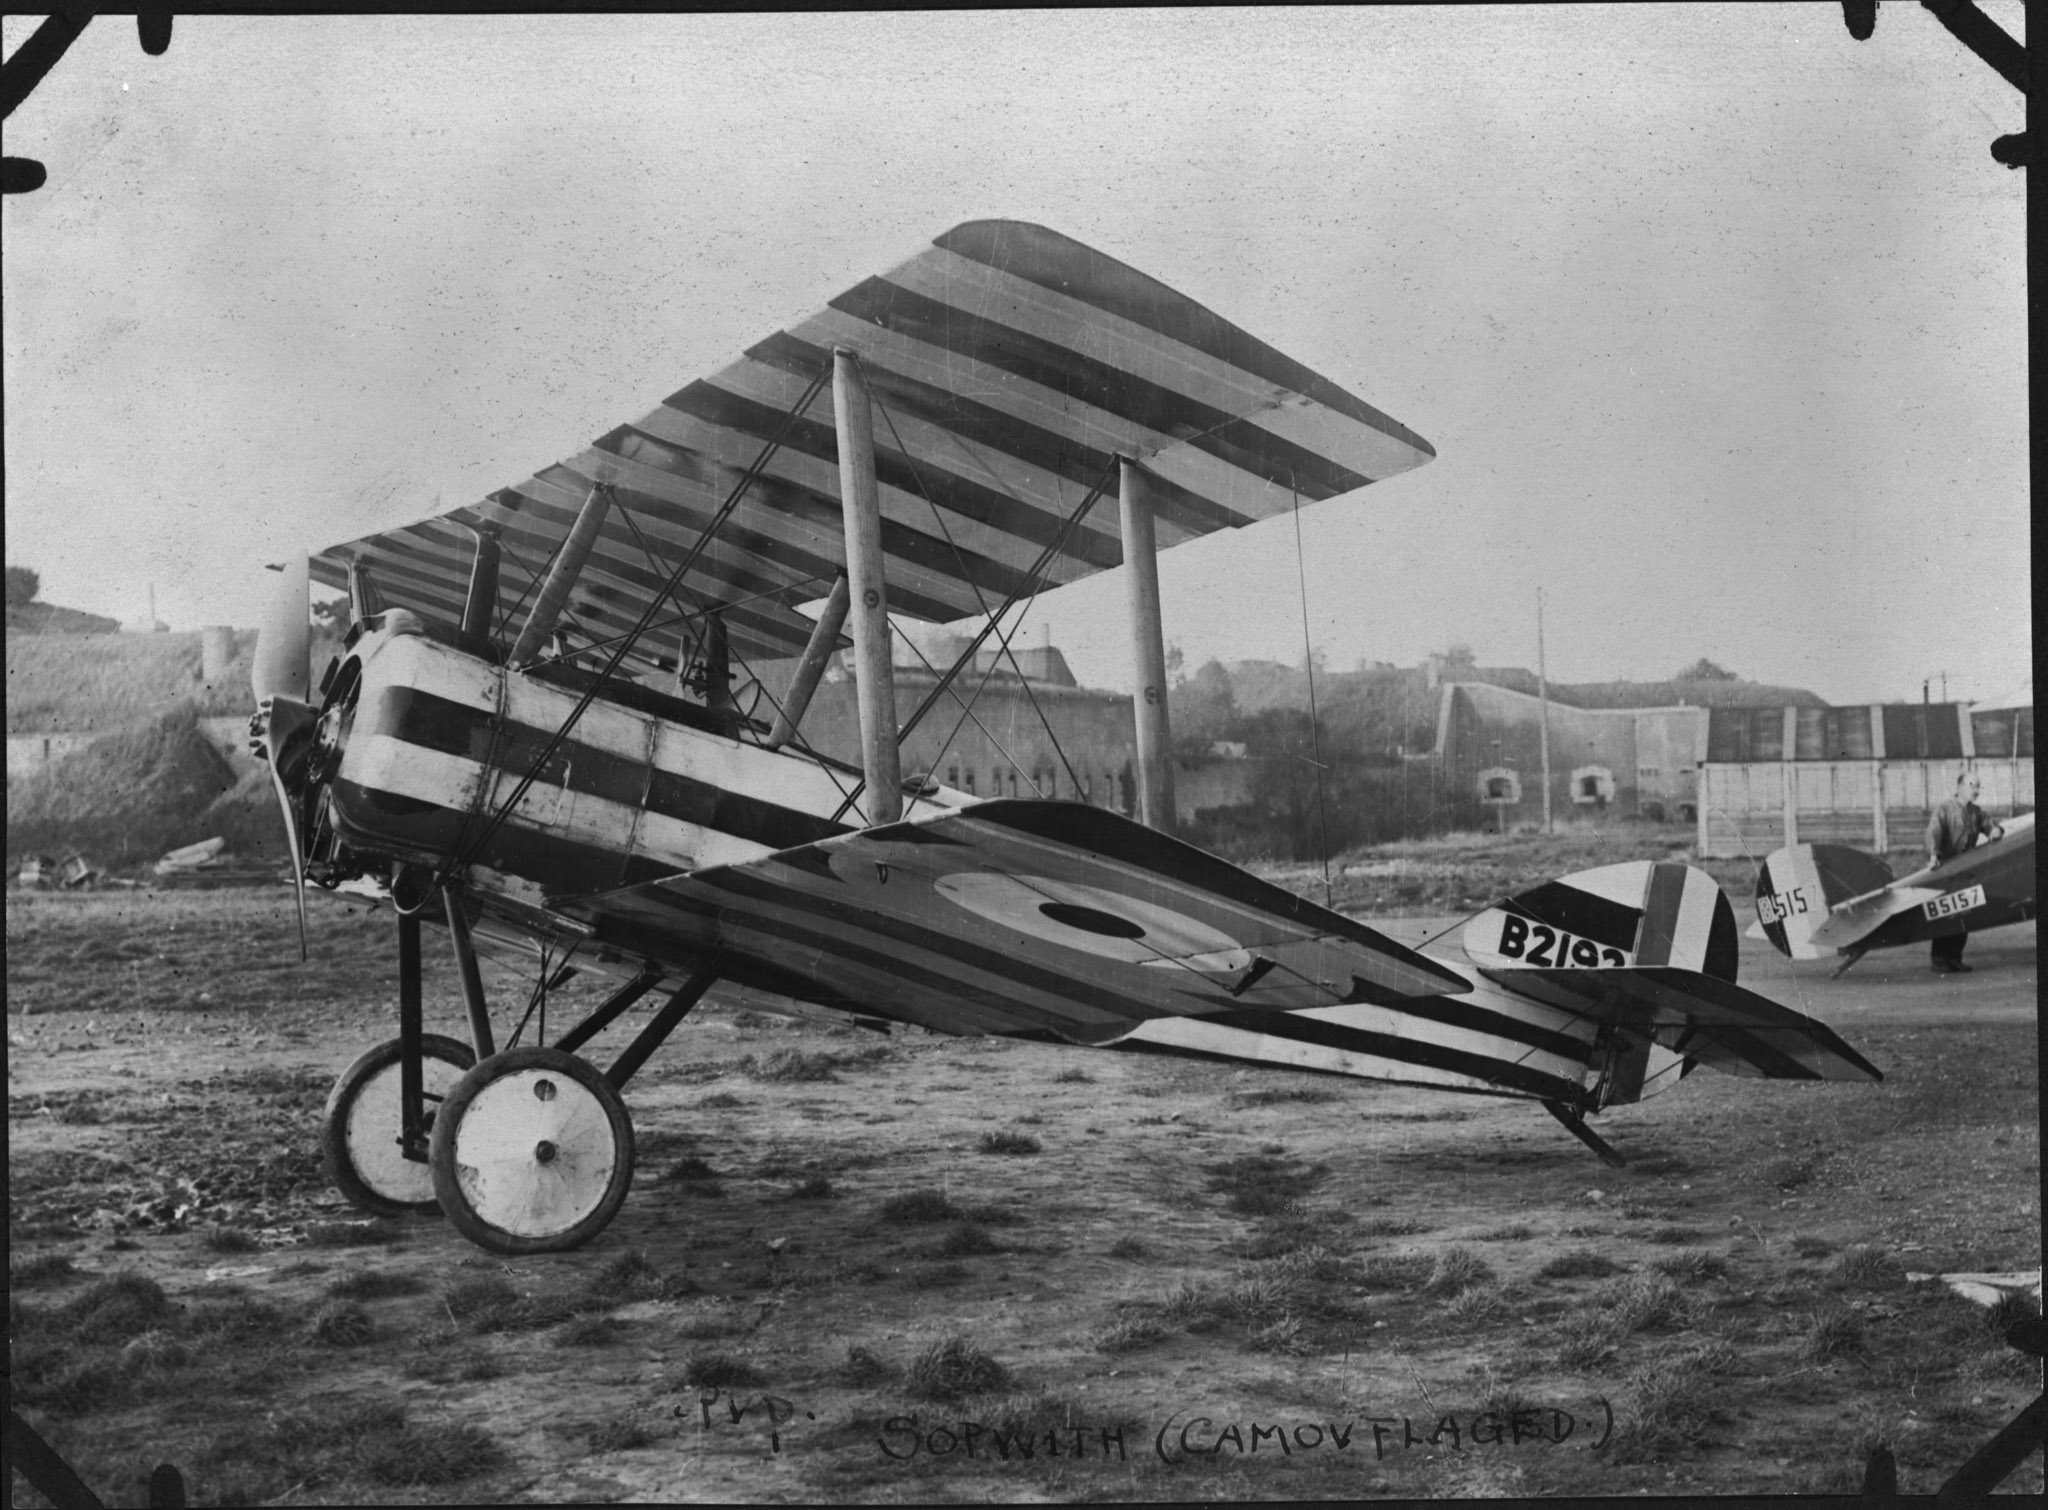 Un Sopwith Pup. Le 3e Escadron du Royal Navy Air Service, équipé d'appareils Pup, figure parmi les quatre escadrons du Royal Naval Air Service mis temporairement à la disposition du Royal Flying Corps pendant la période qui a précédé la bataille de la crête de Vimy. Le 3e Escadron relevait du Canadien Redford « Red » Mulock. PHOTO : Archives du MDN, RE-20572